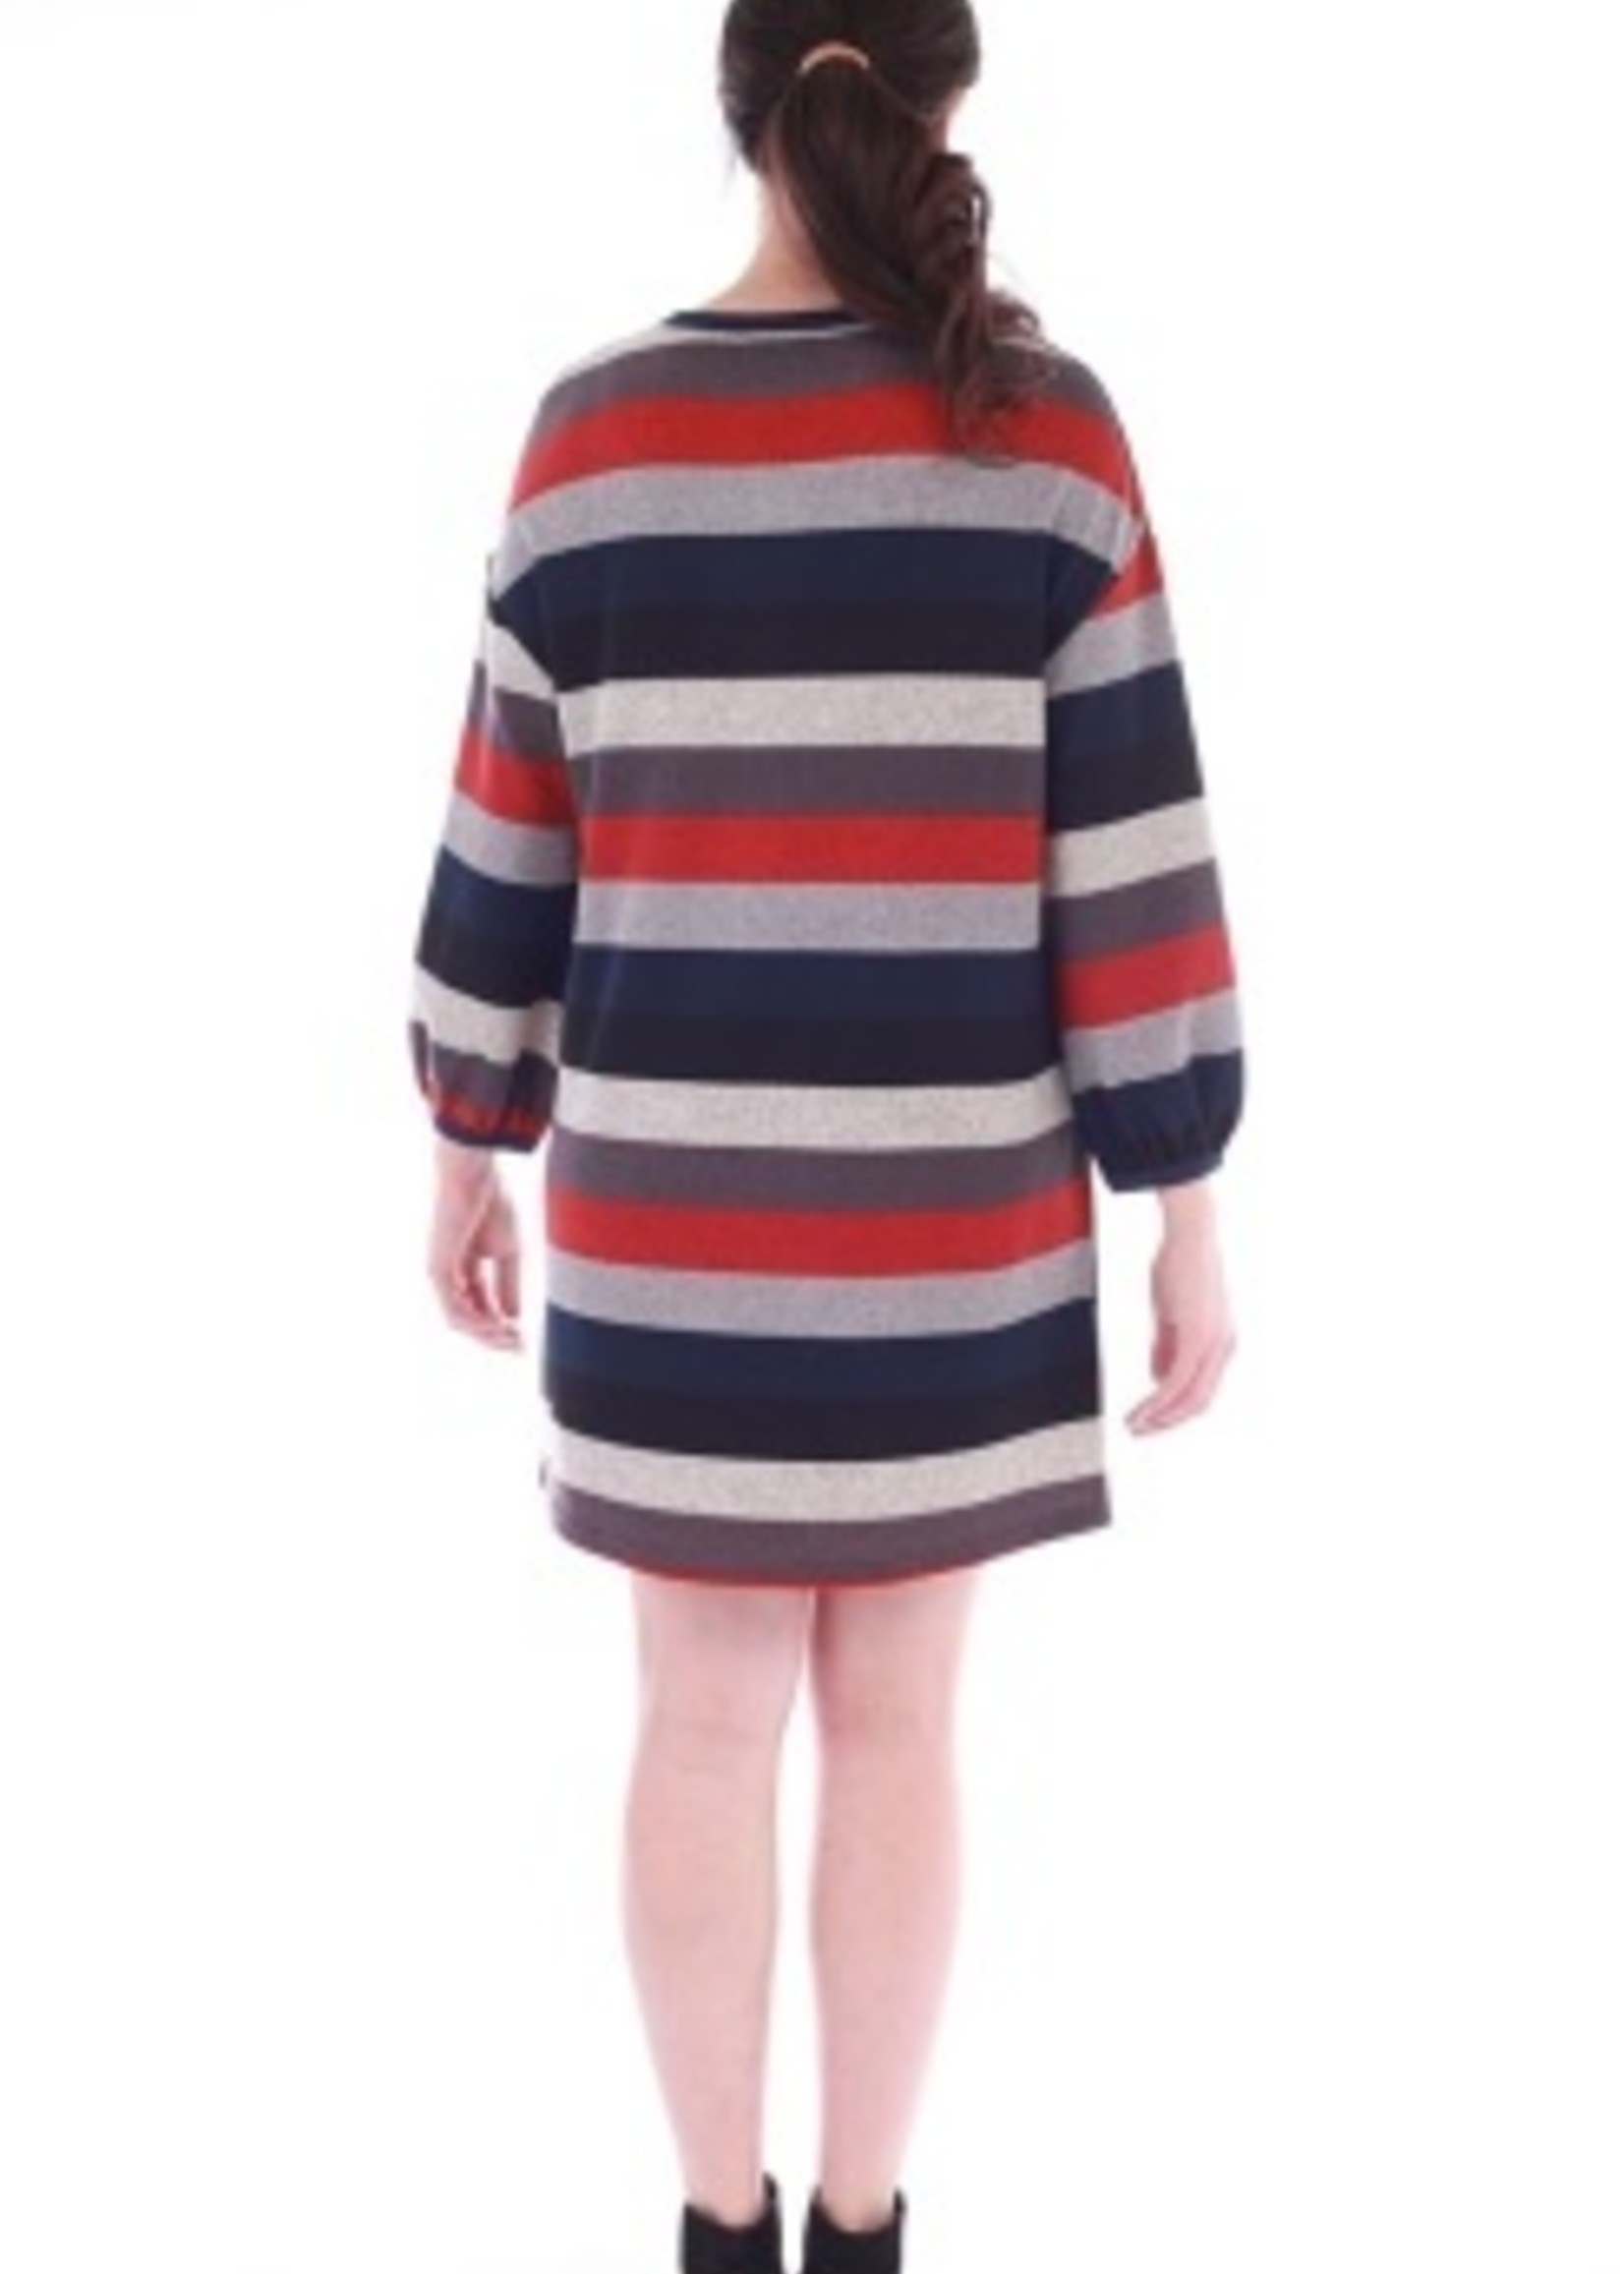 Livin for the Wkend Round Neck Striped Dress